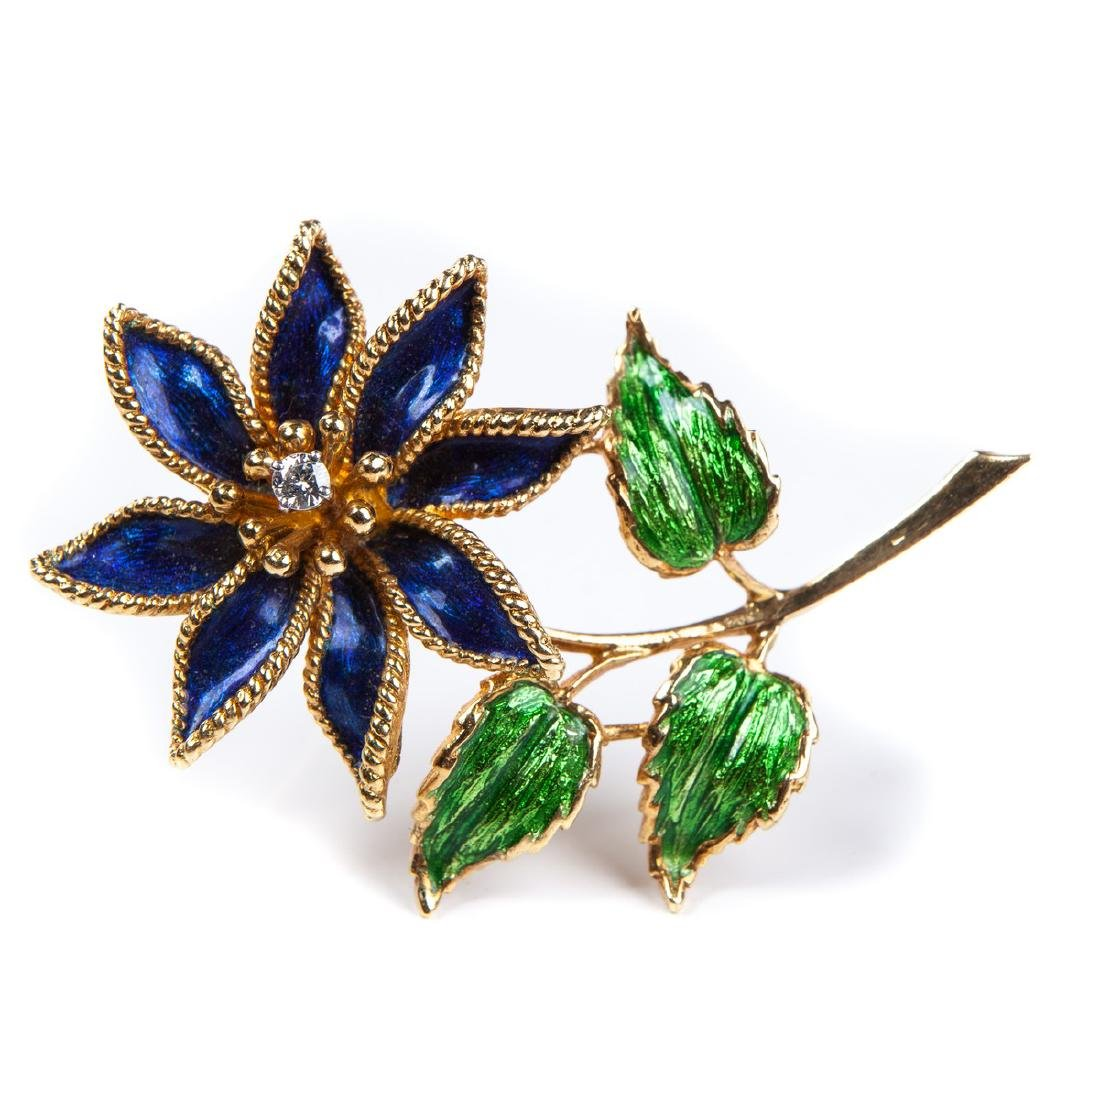 TIFFANY & CO 18 KT ENAMEL BROOCH